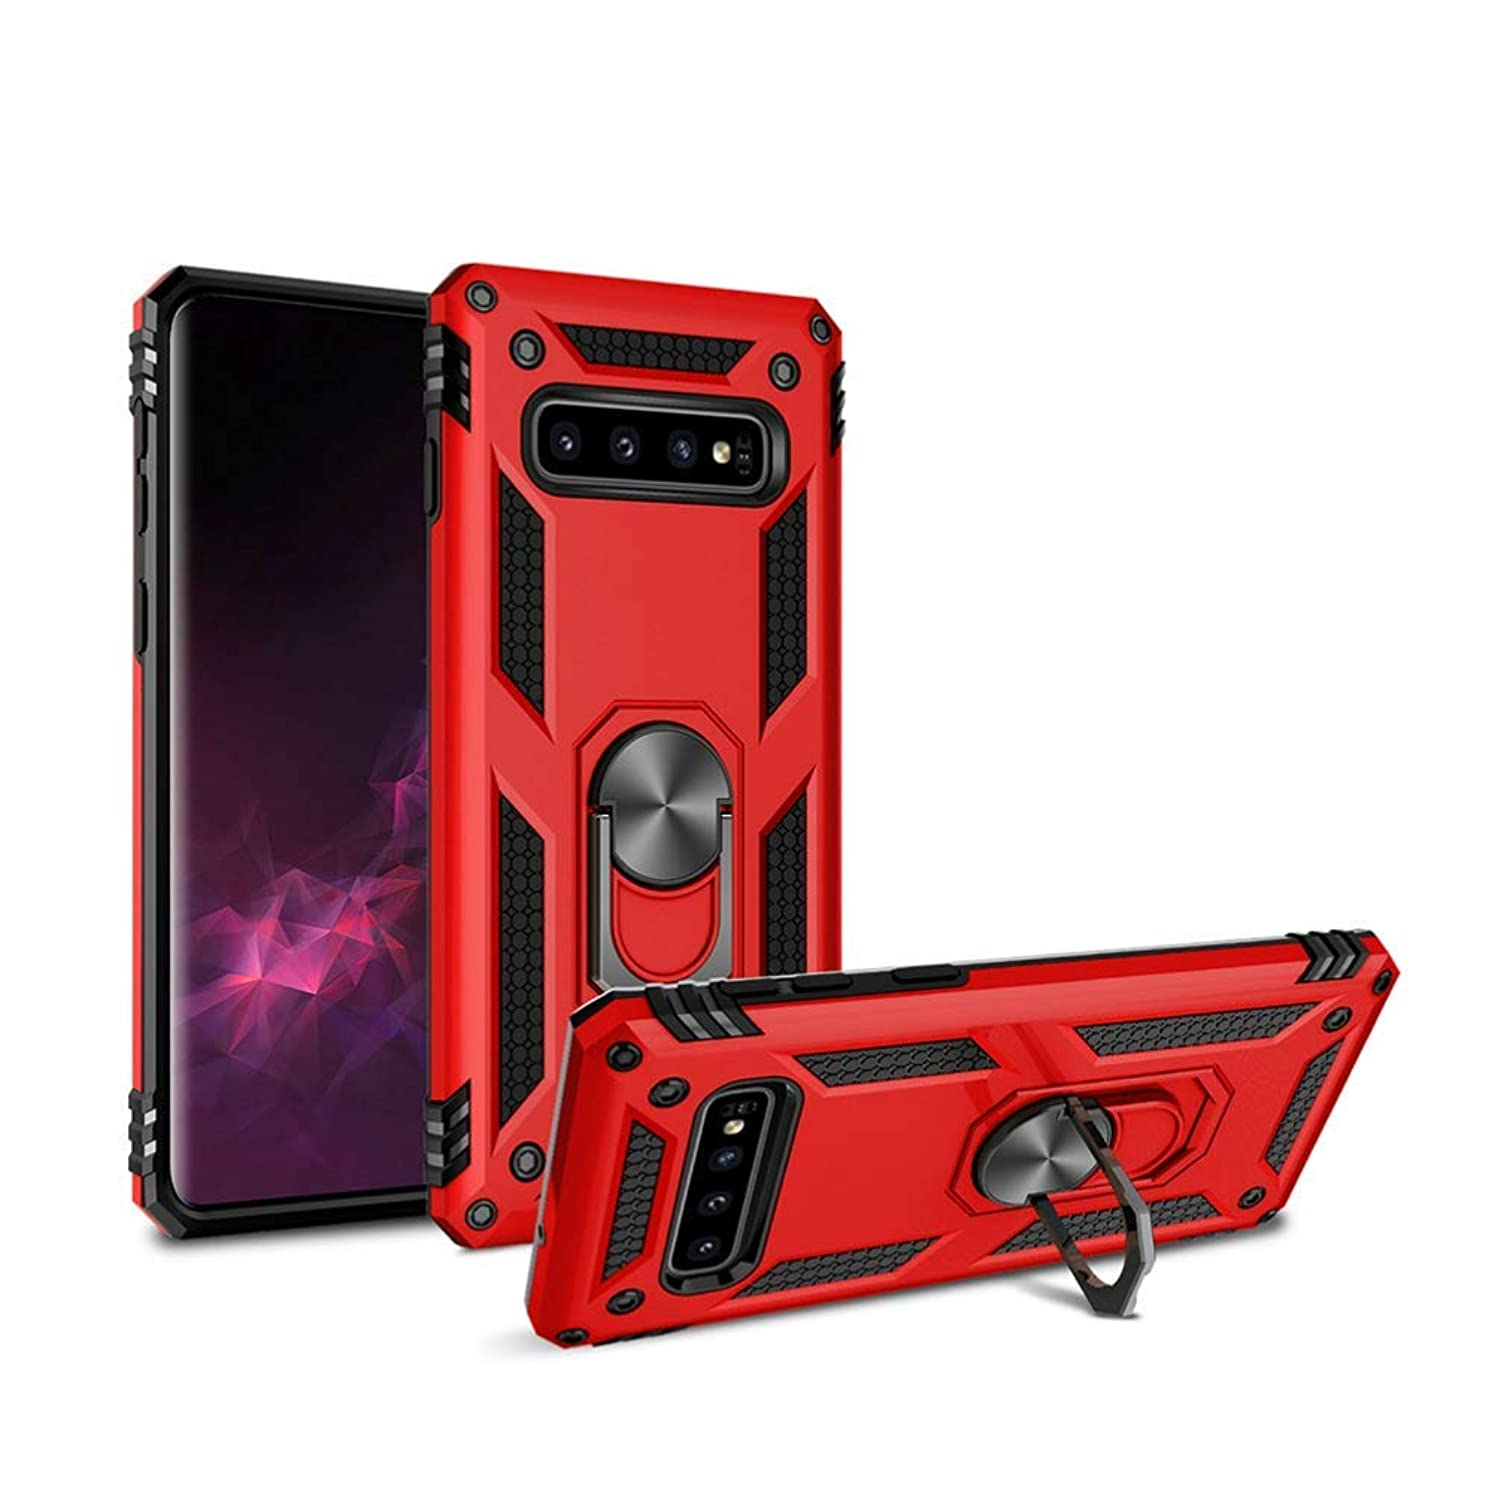 Heavy Duty Shockproof Case for Galaxy S10,360-Degree Swivel Ring Stand,Car Magnetic Adsorption,Hard PC Back Cover [Military Grade Drop Test] Compatible with Samsung Galaxy S10 (Red)